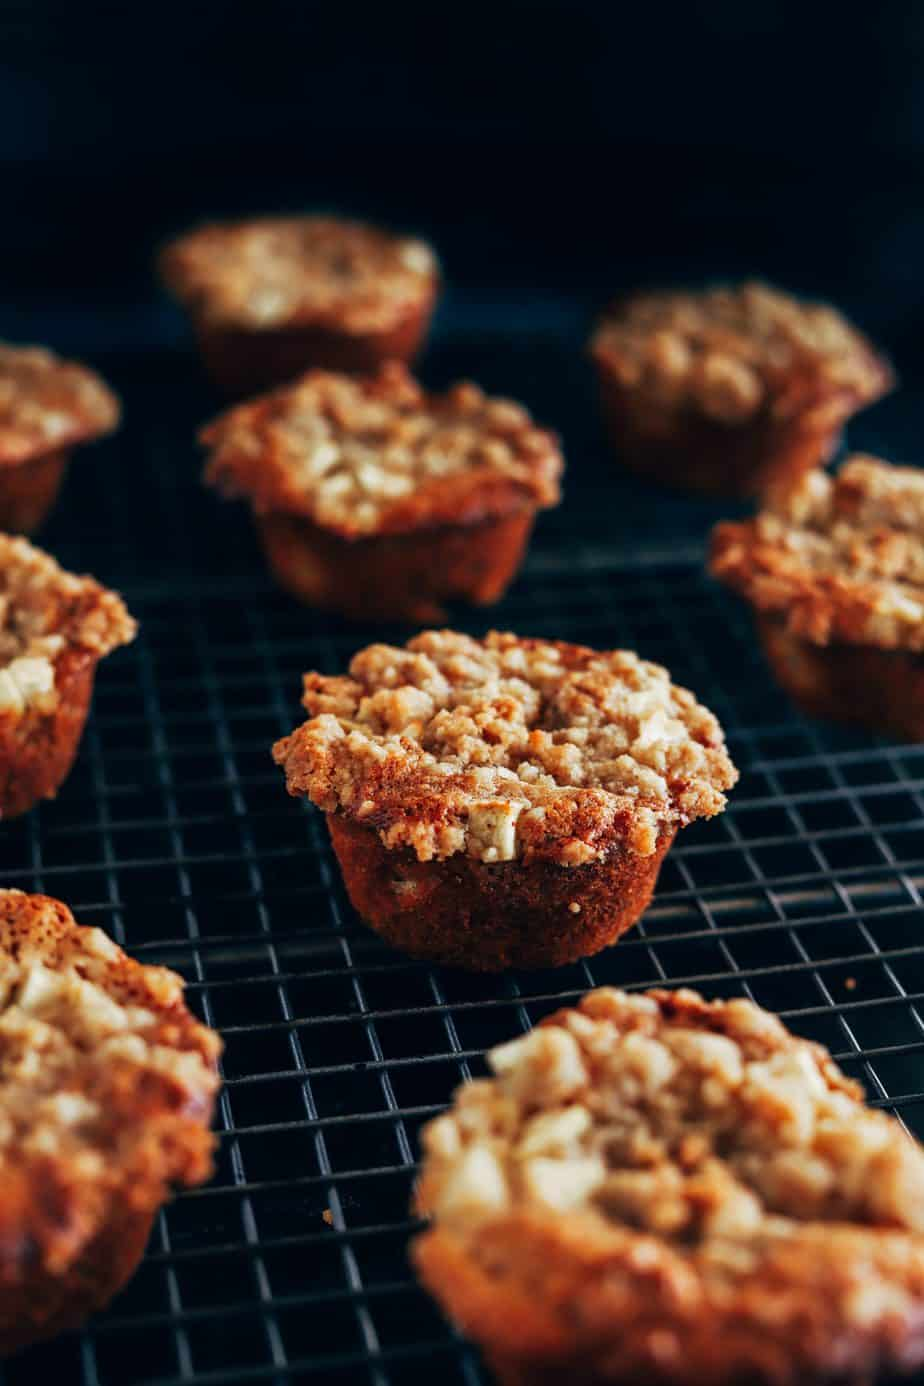 Apple muffins cooling on a rack with caramelized crumble topping